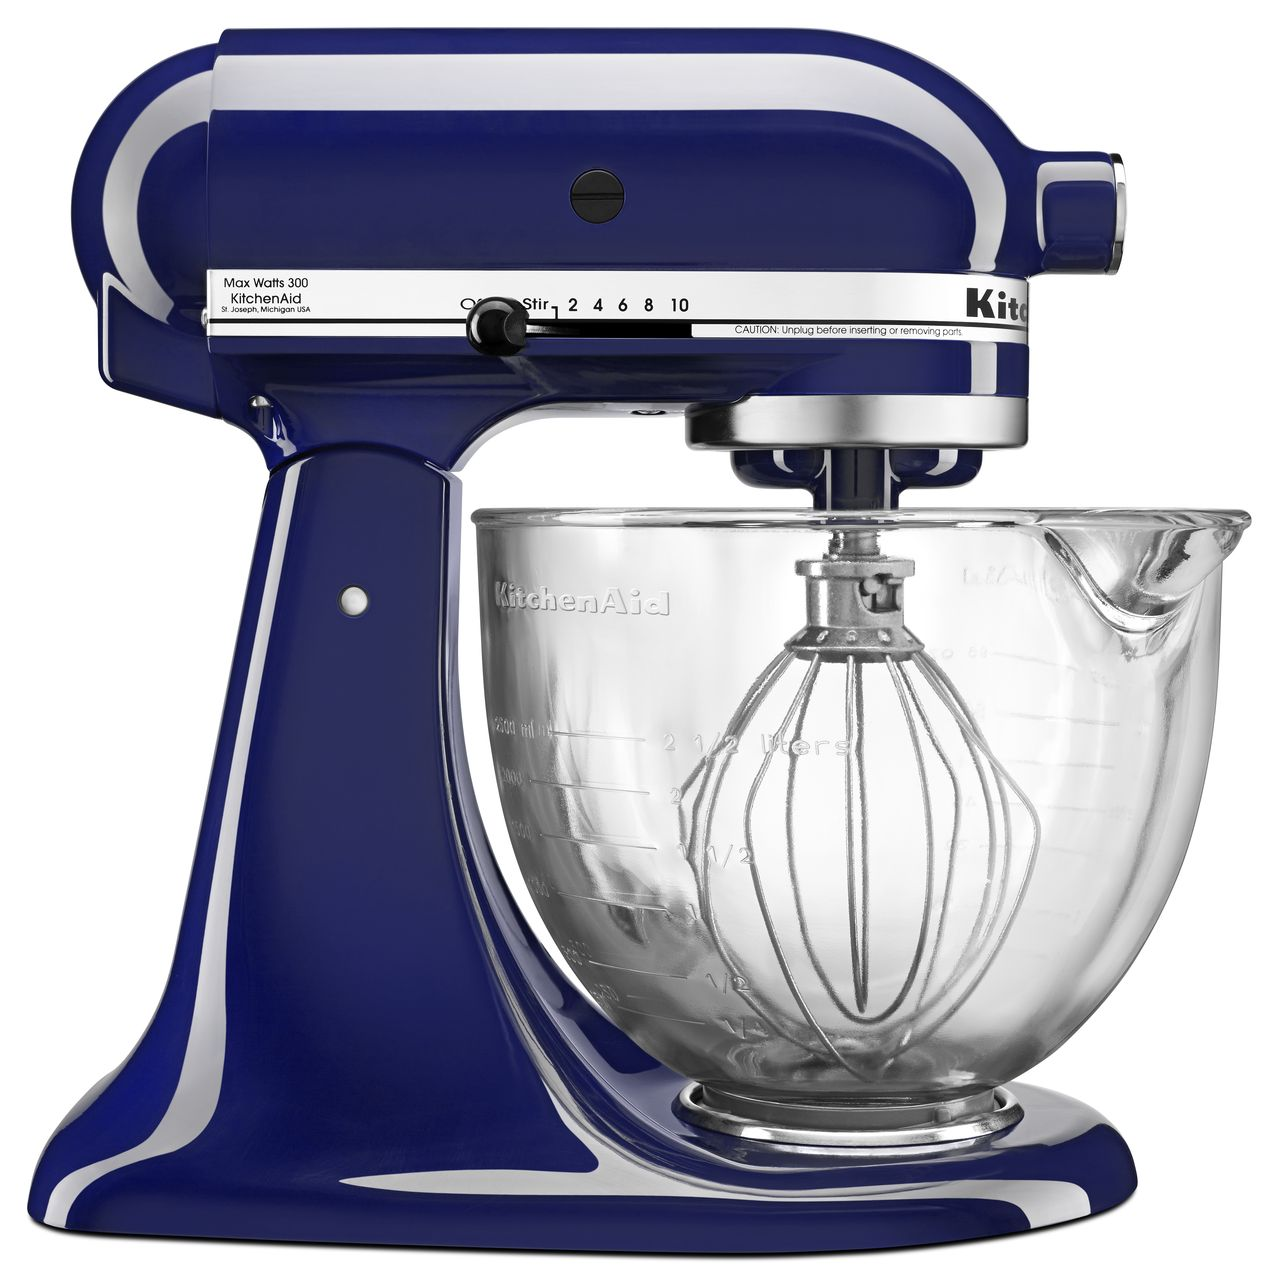 Kitchenaid Stand Mixer Bowl ~ kitchenaid u00ae 5 quart tilt head stand mixer with glass bowl& flex edge beater ebay